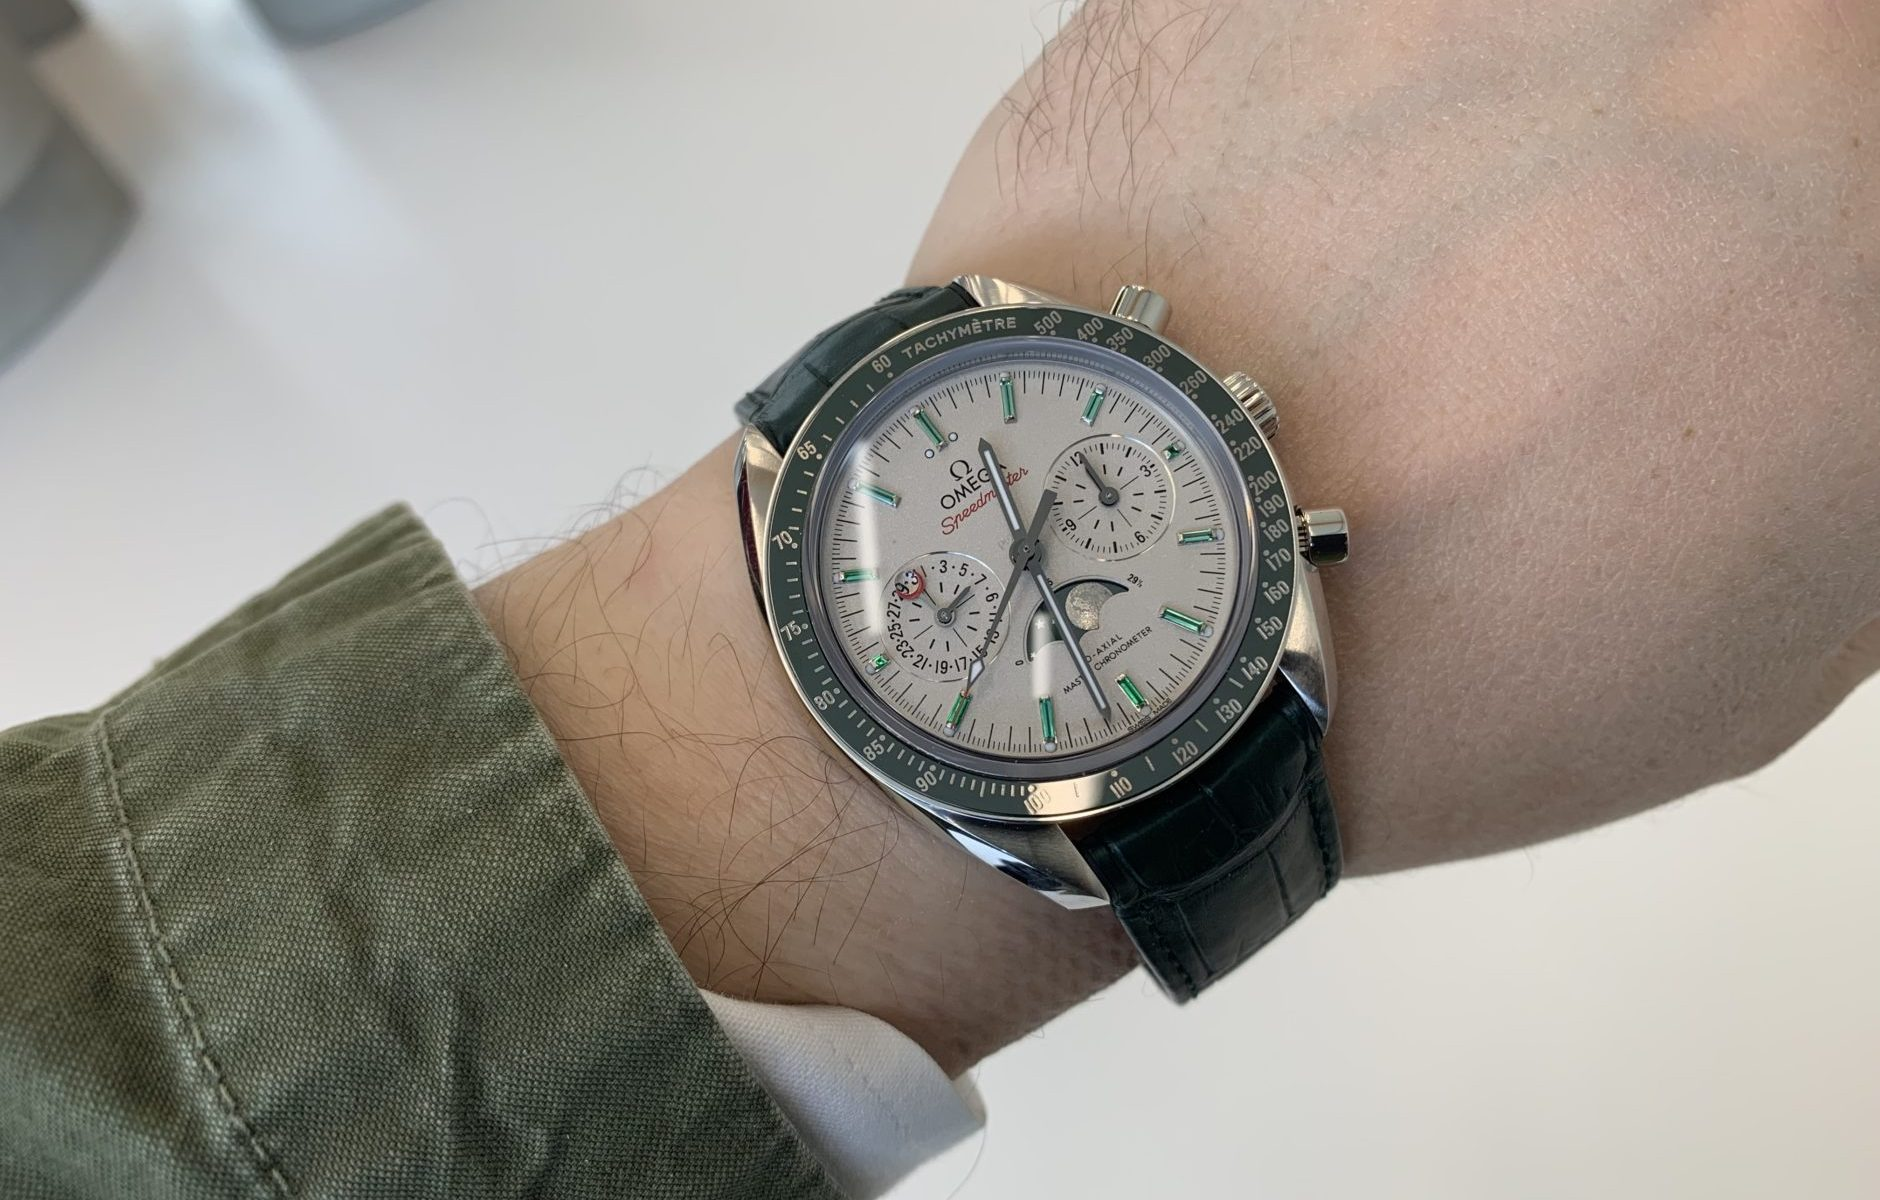 The silvery dials fake watches have moon phases.